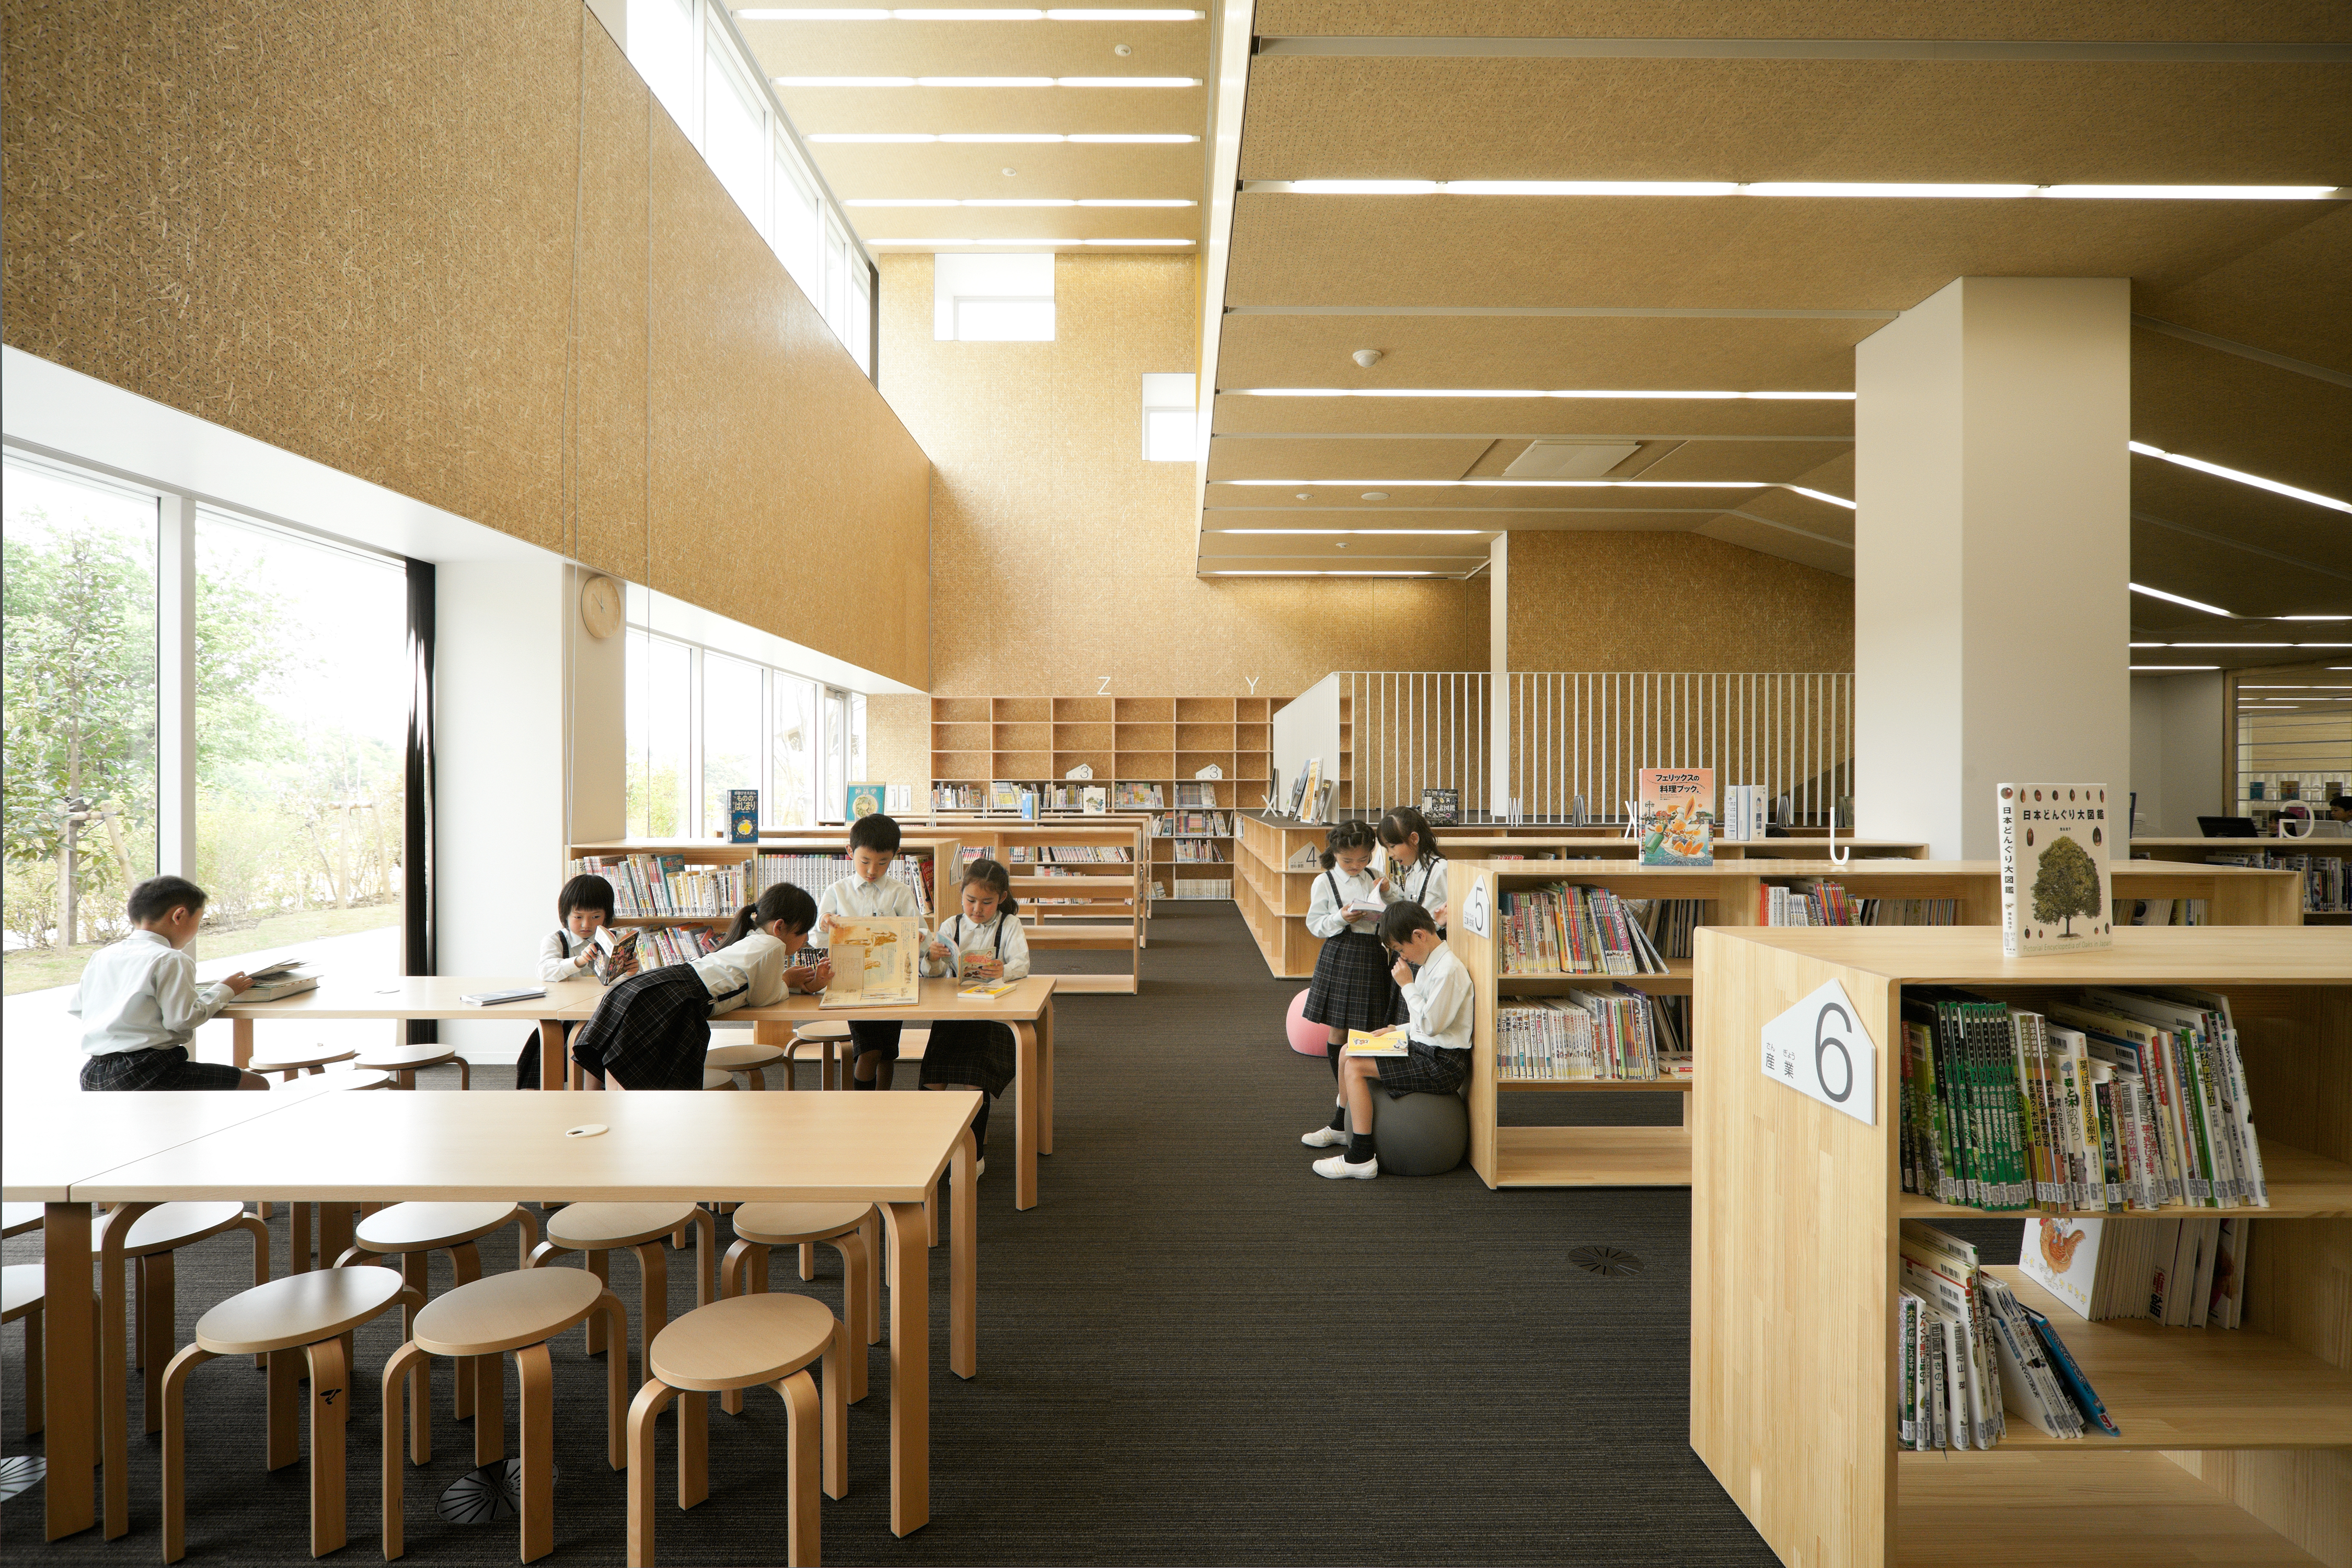 ... The Use Of Wood In The Library And Other Areas Of Teikyo Elementary  School Is Meant